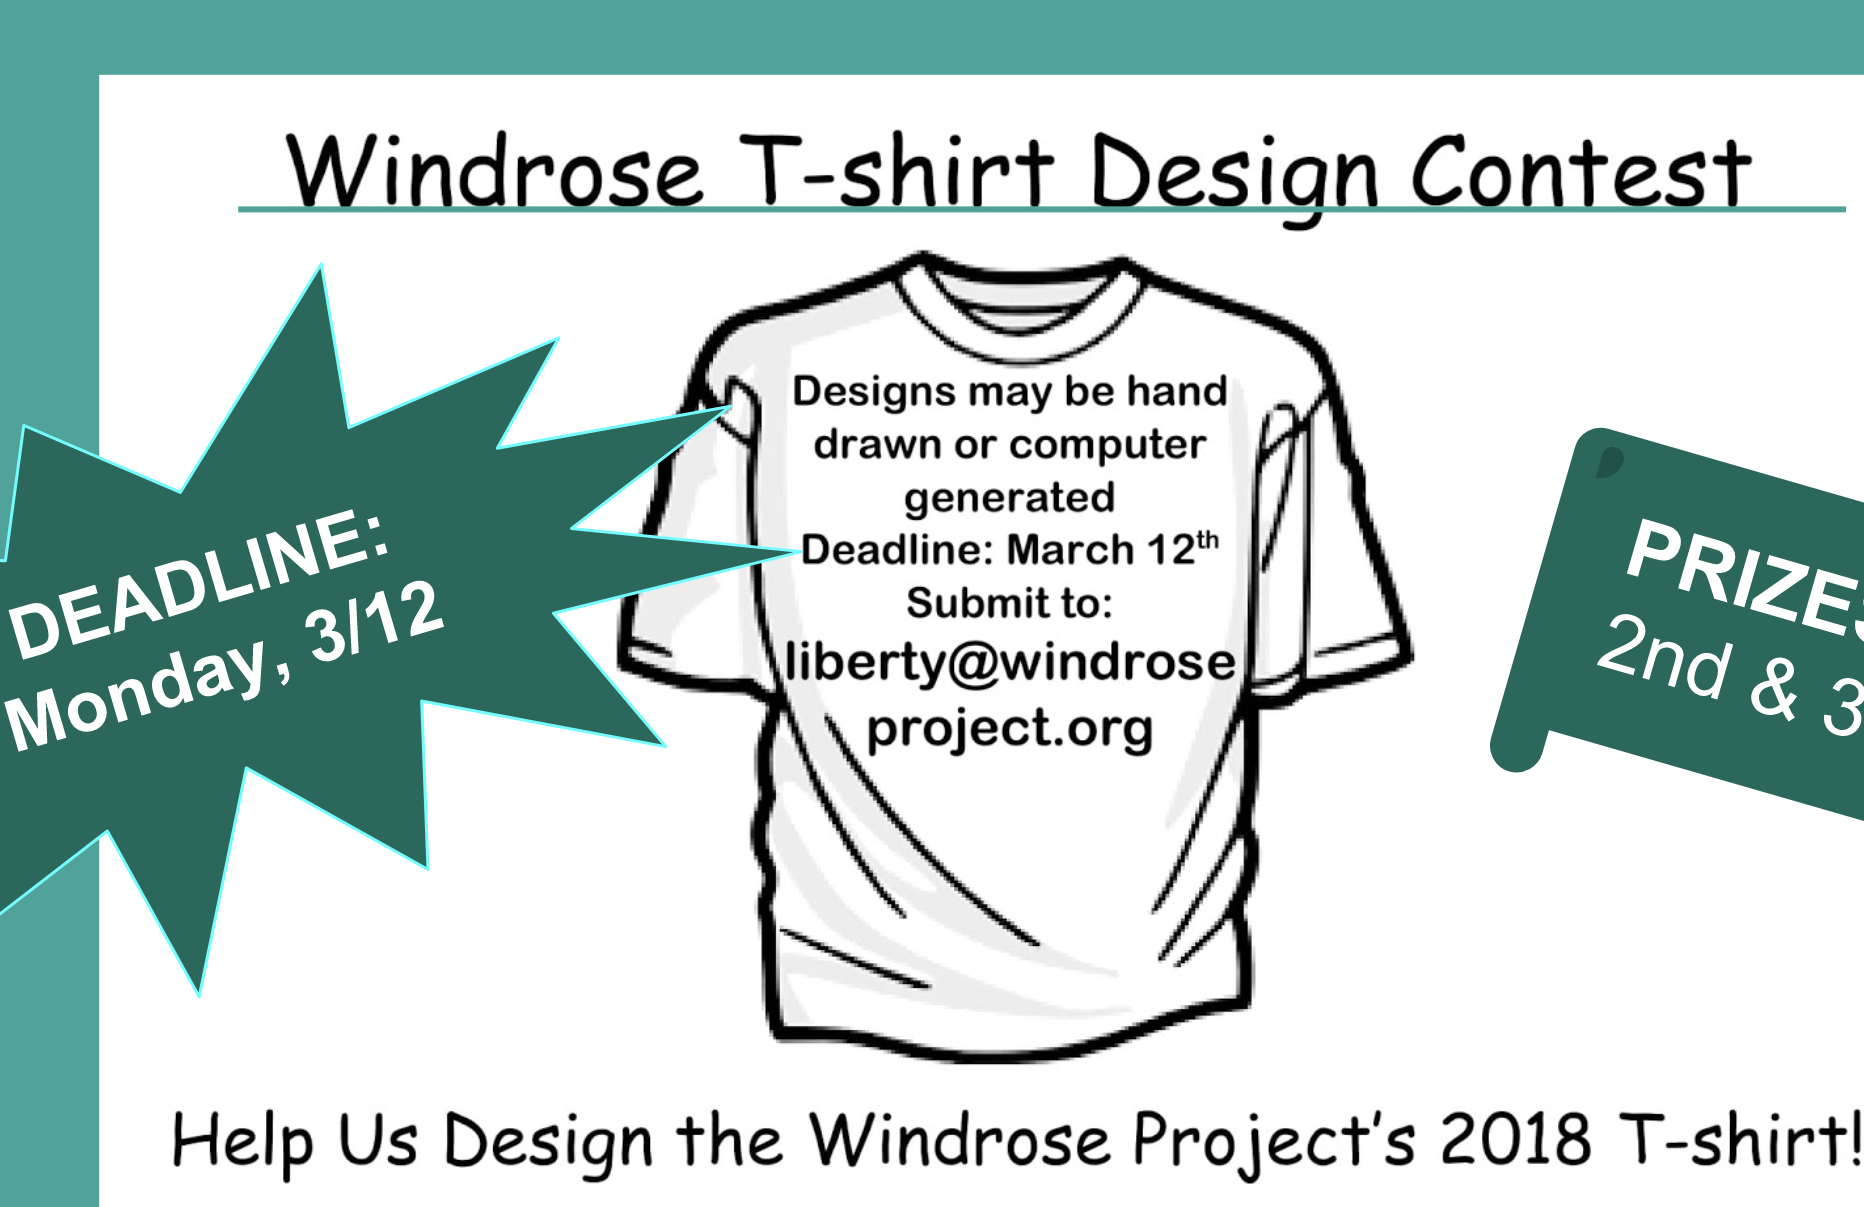 2018 T-shirt Design Contest